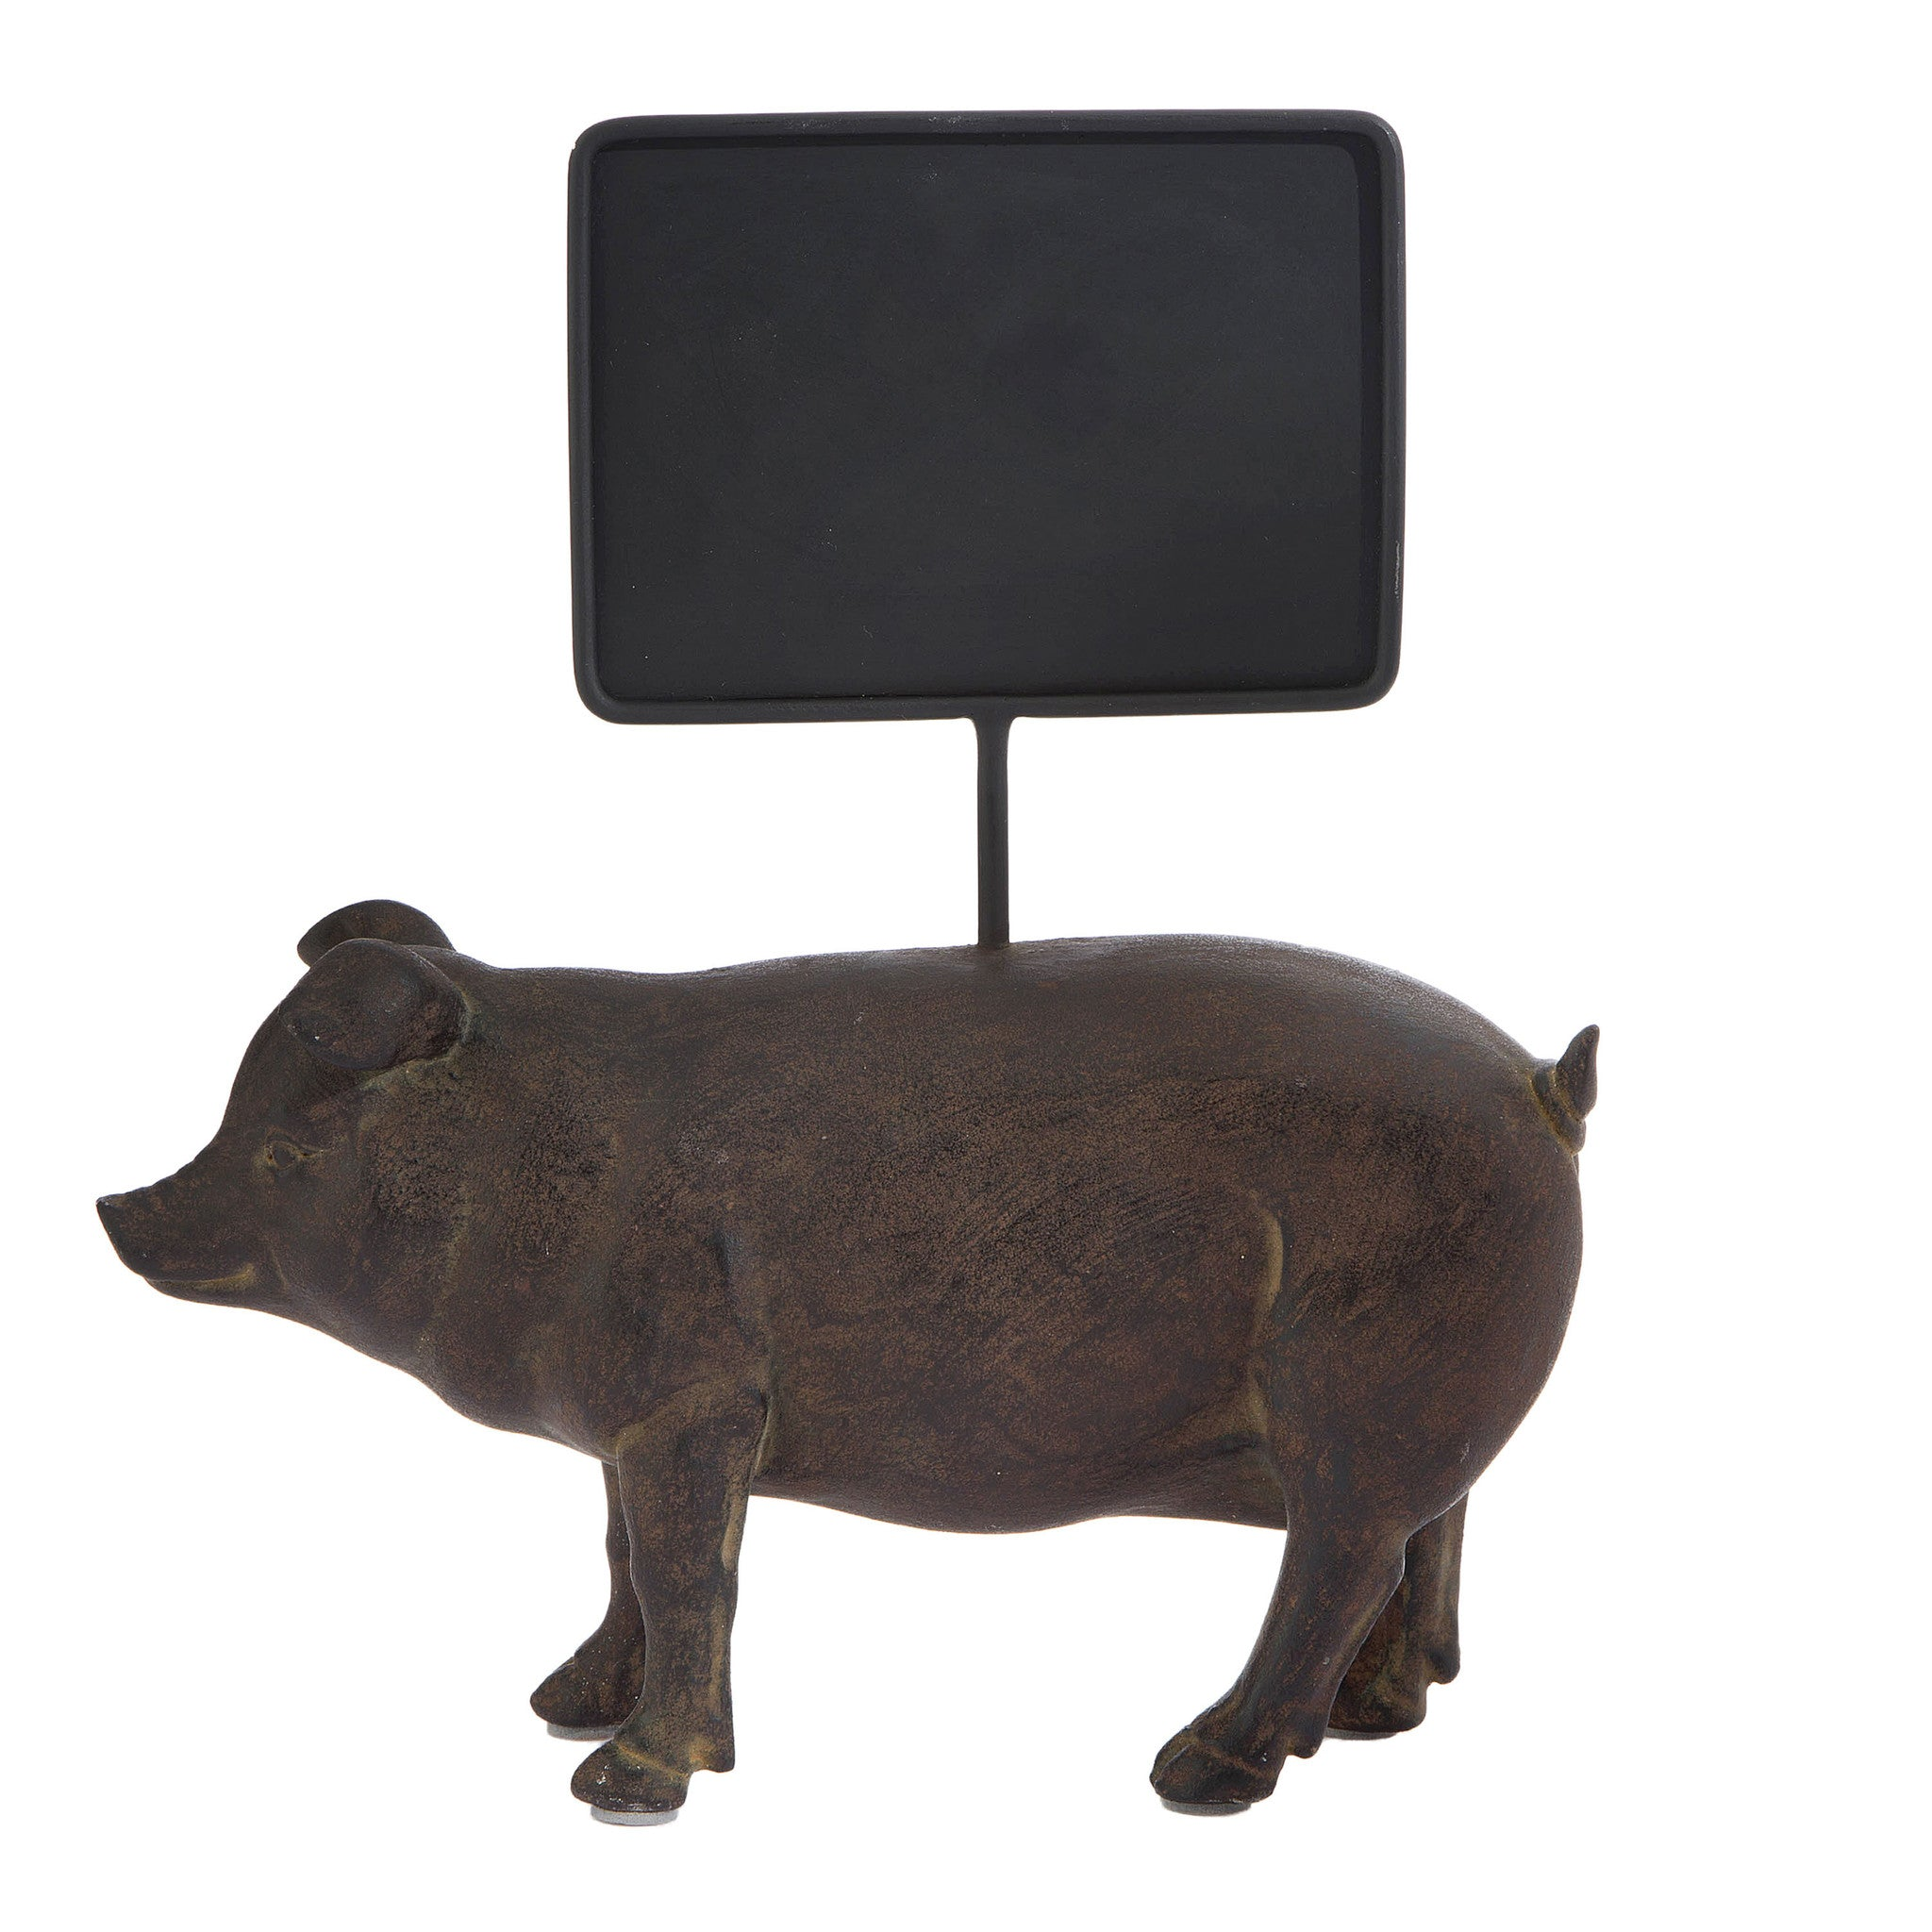 Pig with chalkboard sign!